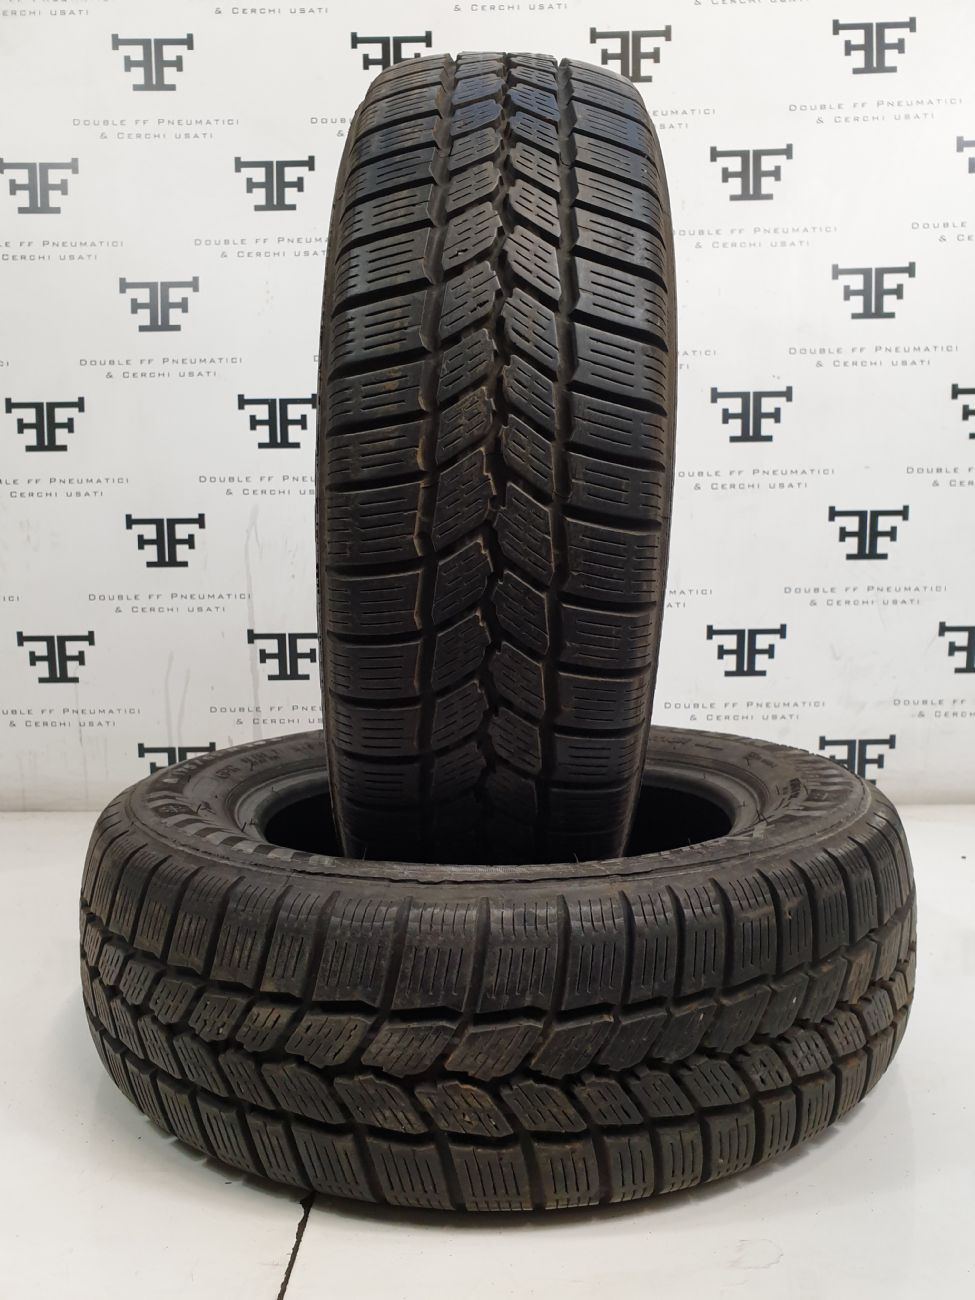 175/65 R14C 90/88 T MICHELIN AGILIS 51 SNOW-ICE